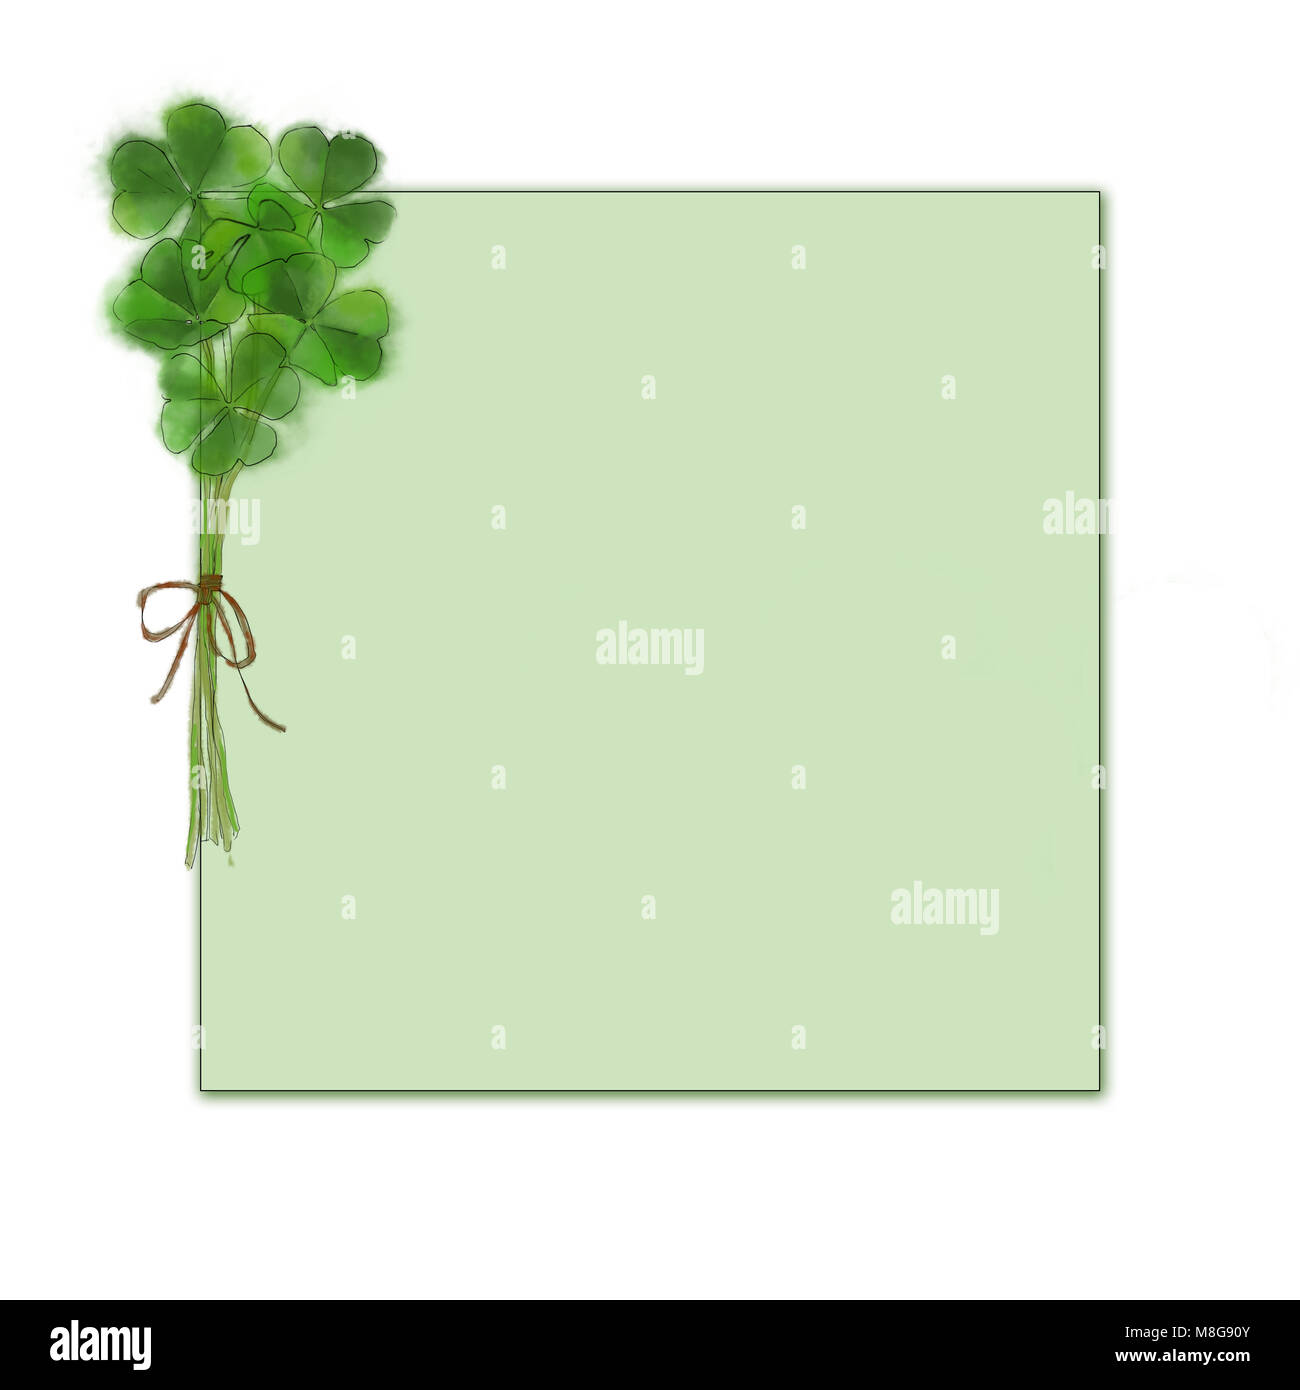 image about St Patrick's Day Clover Printable named Shamrock Bouquet Template Layout. St. Patricks Working day Structure